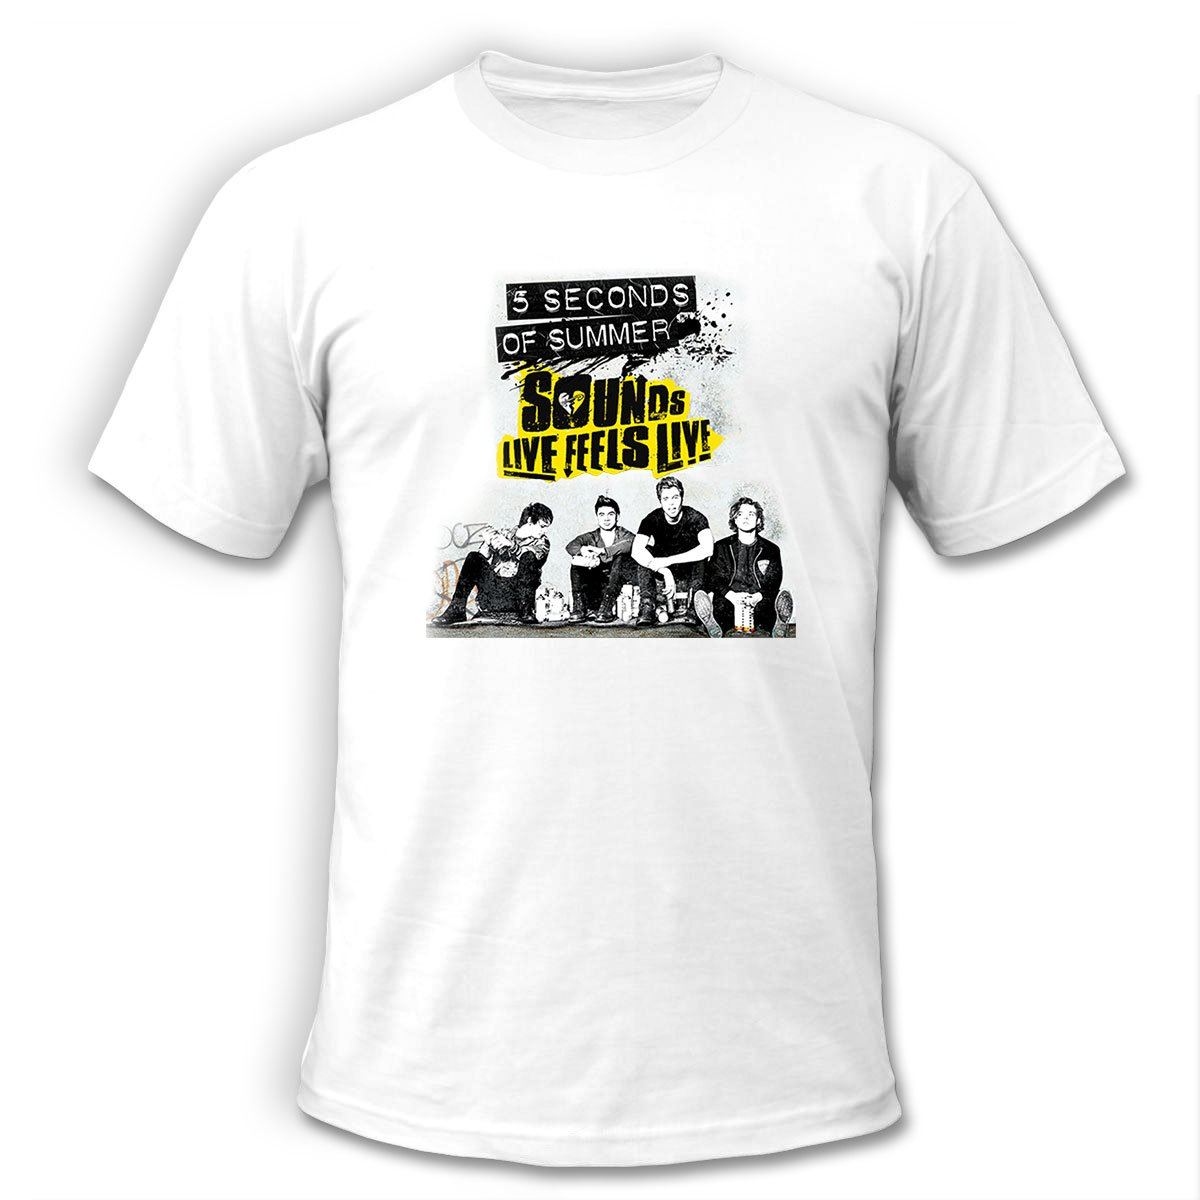 5 SOS Seconds of Summer Tour 2016 Show Concert scedules White T-Shirt